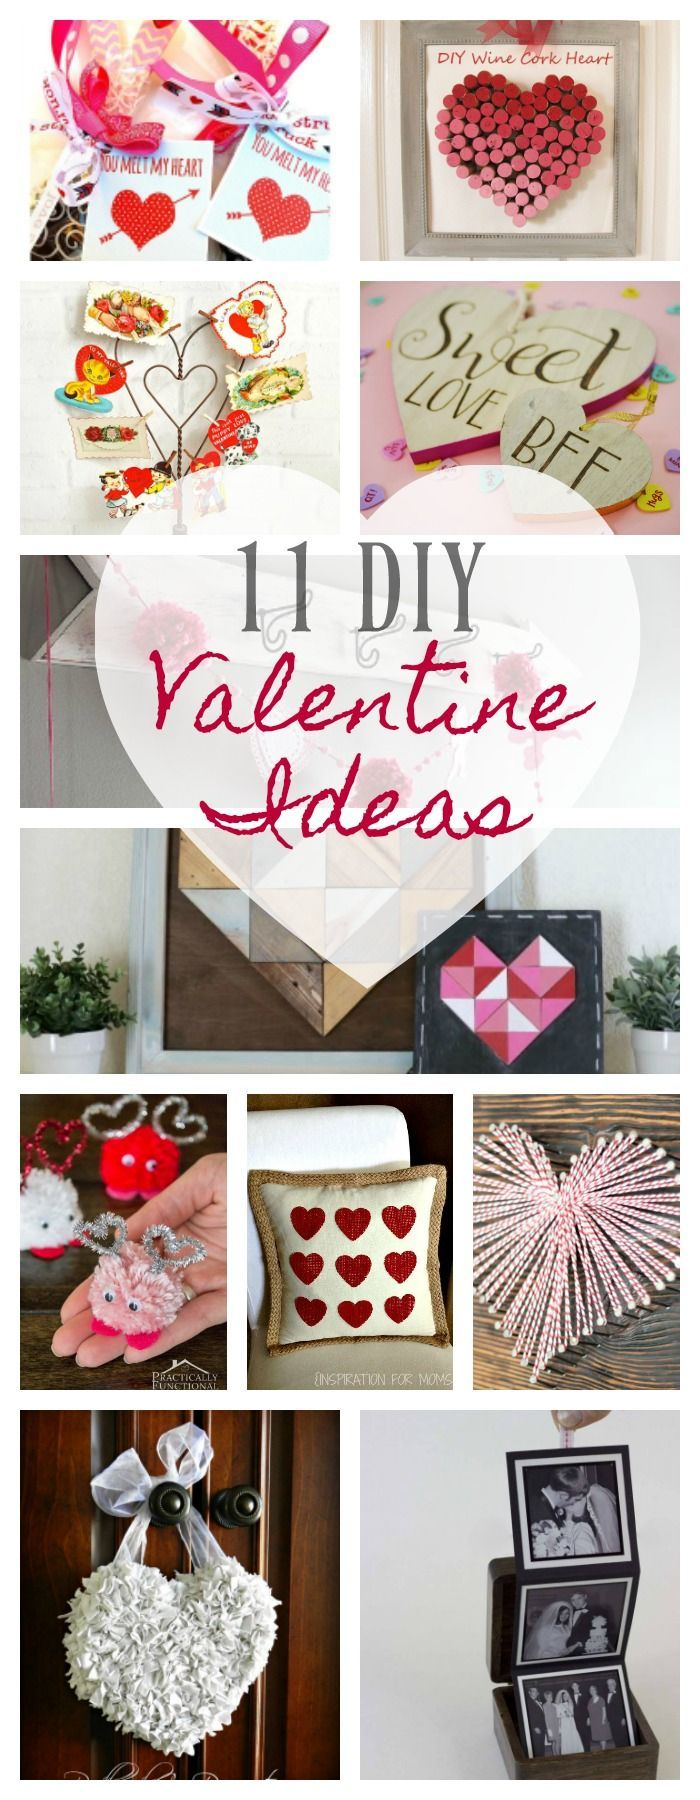 11 Valentineu0027s Day Ideas DIY Housewives